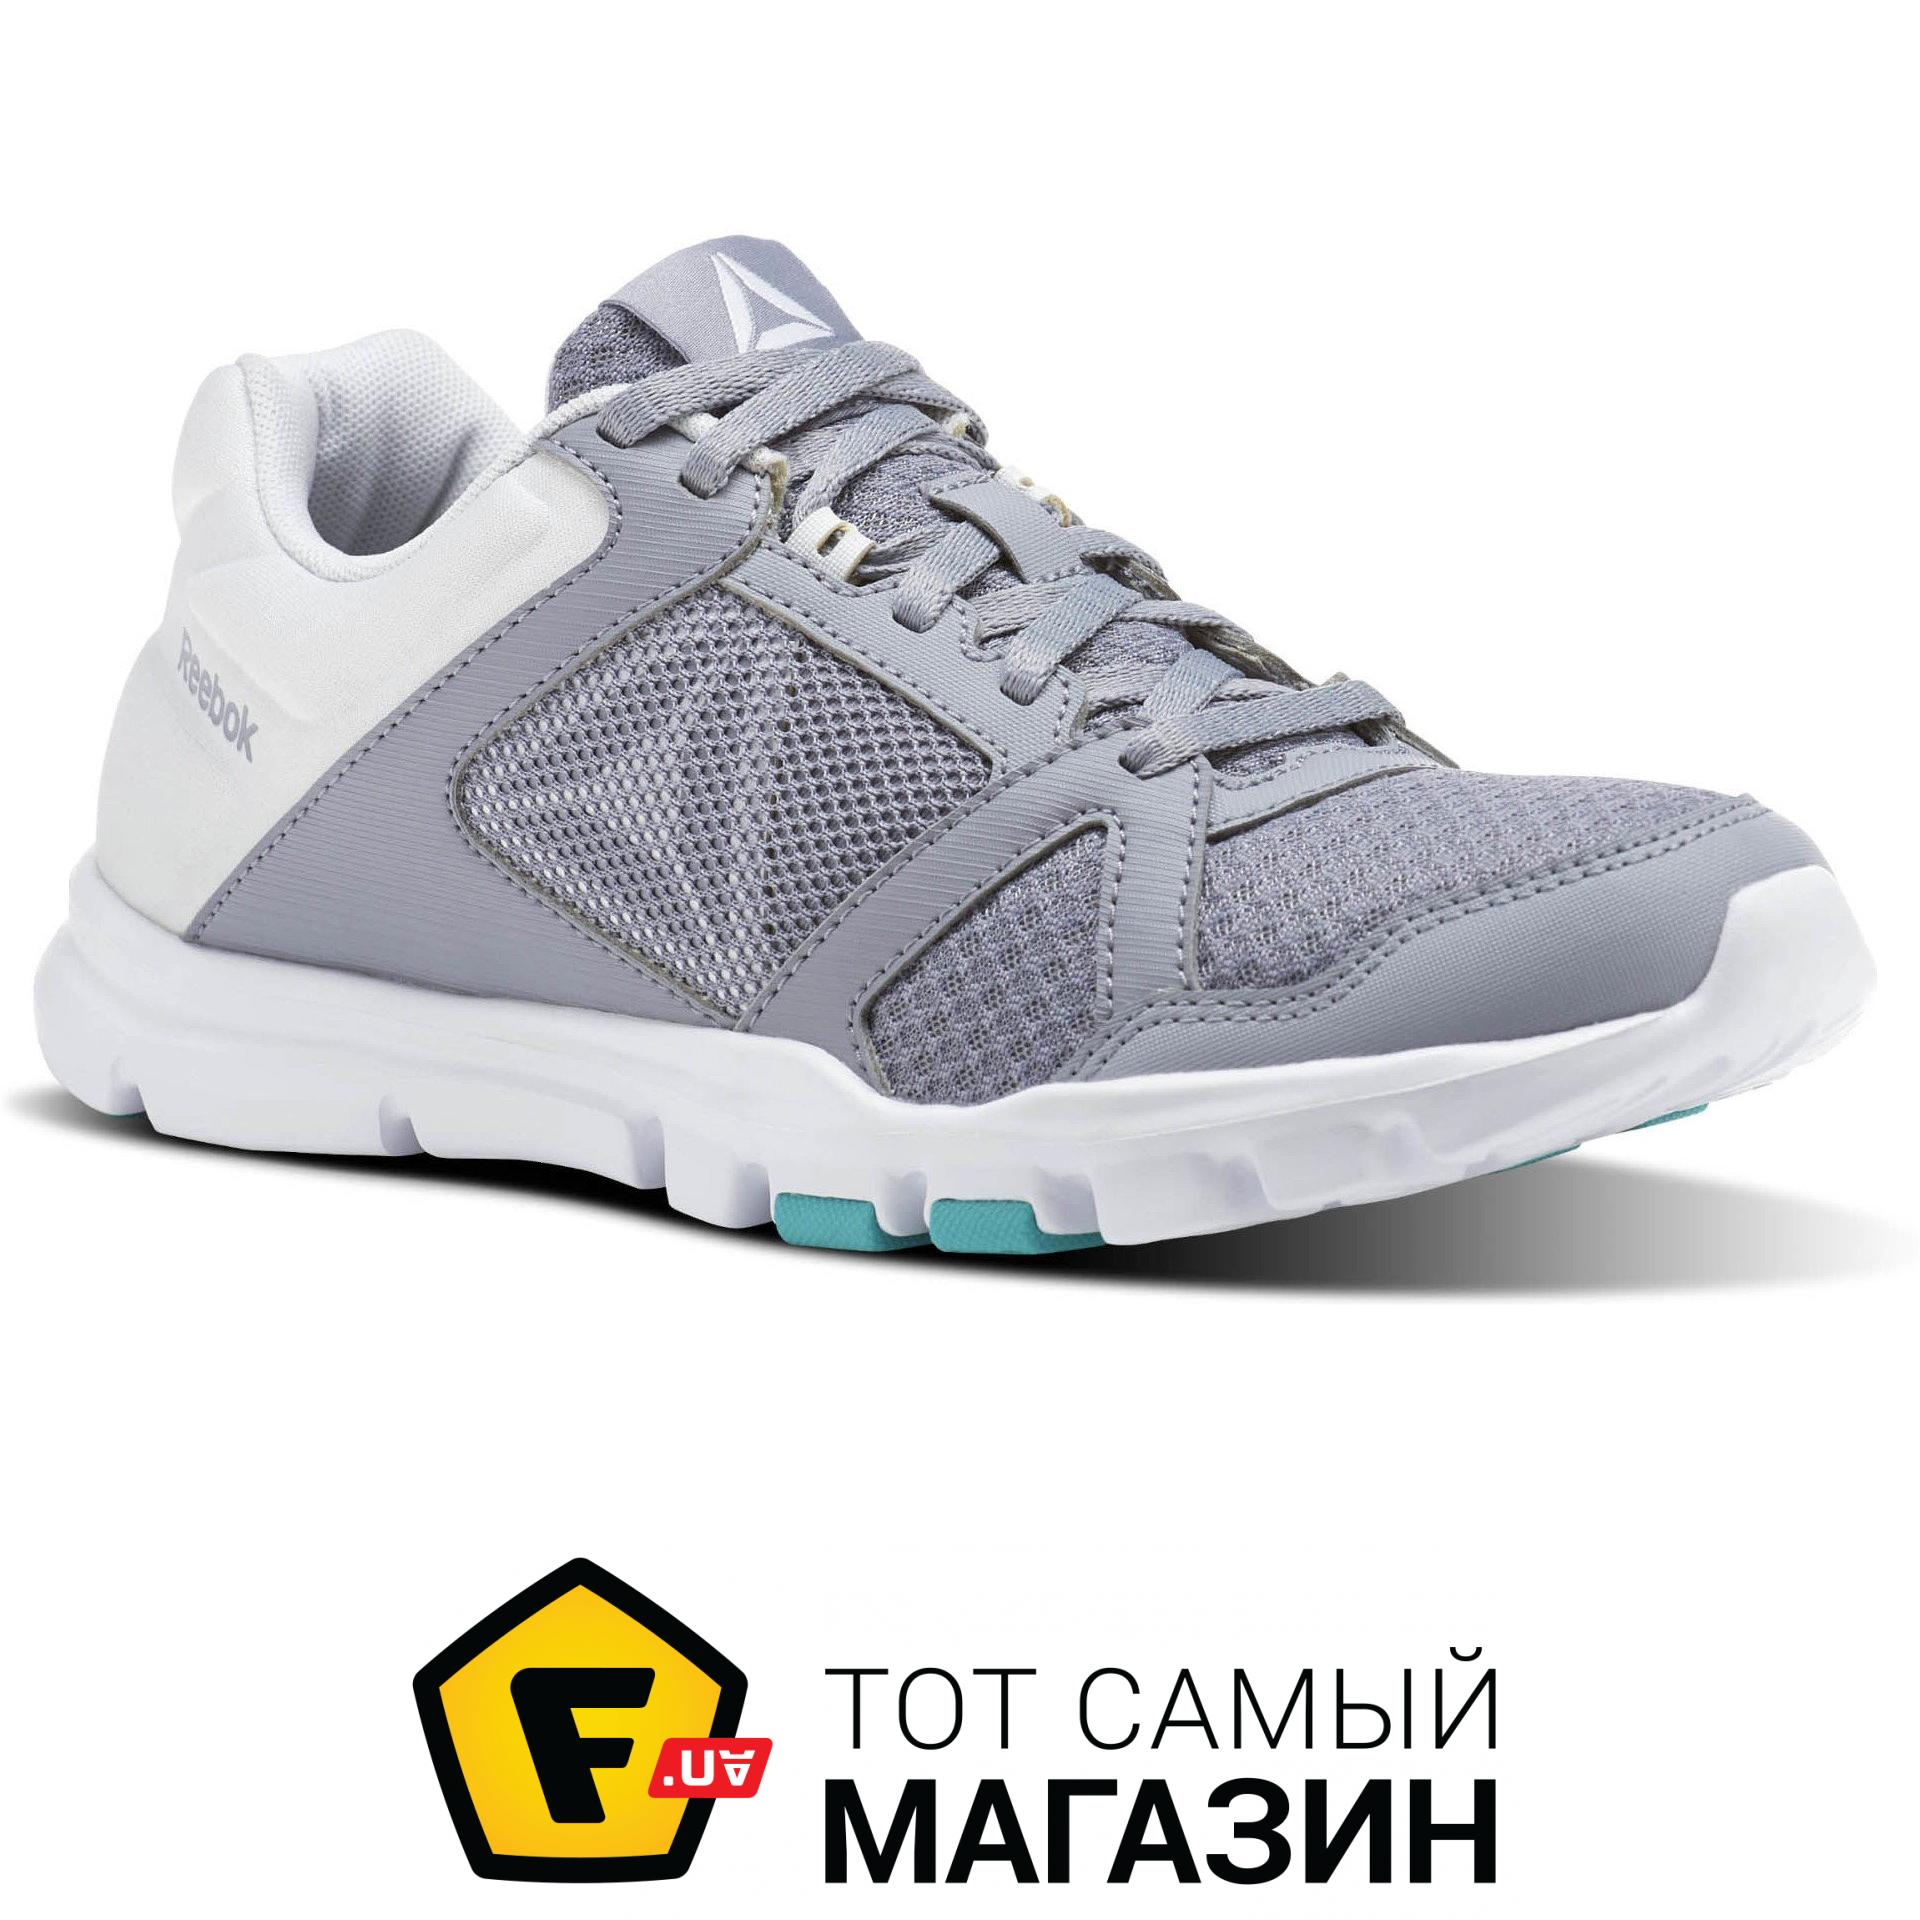 929a40a4 Reebok Yourflex Trainette 10 MT женские Cool Shadow / White / Solid Teal, 6